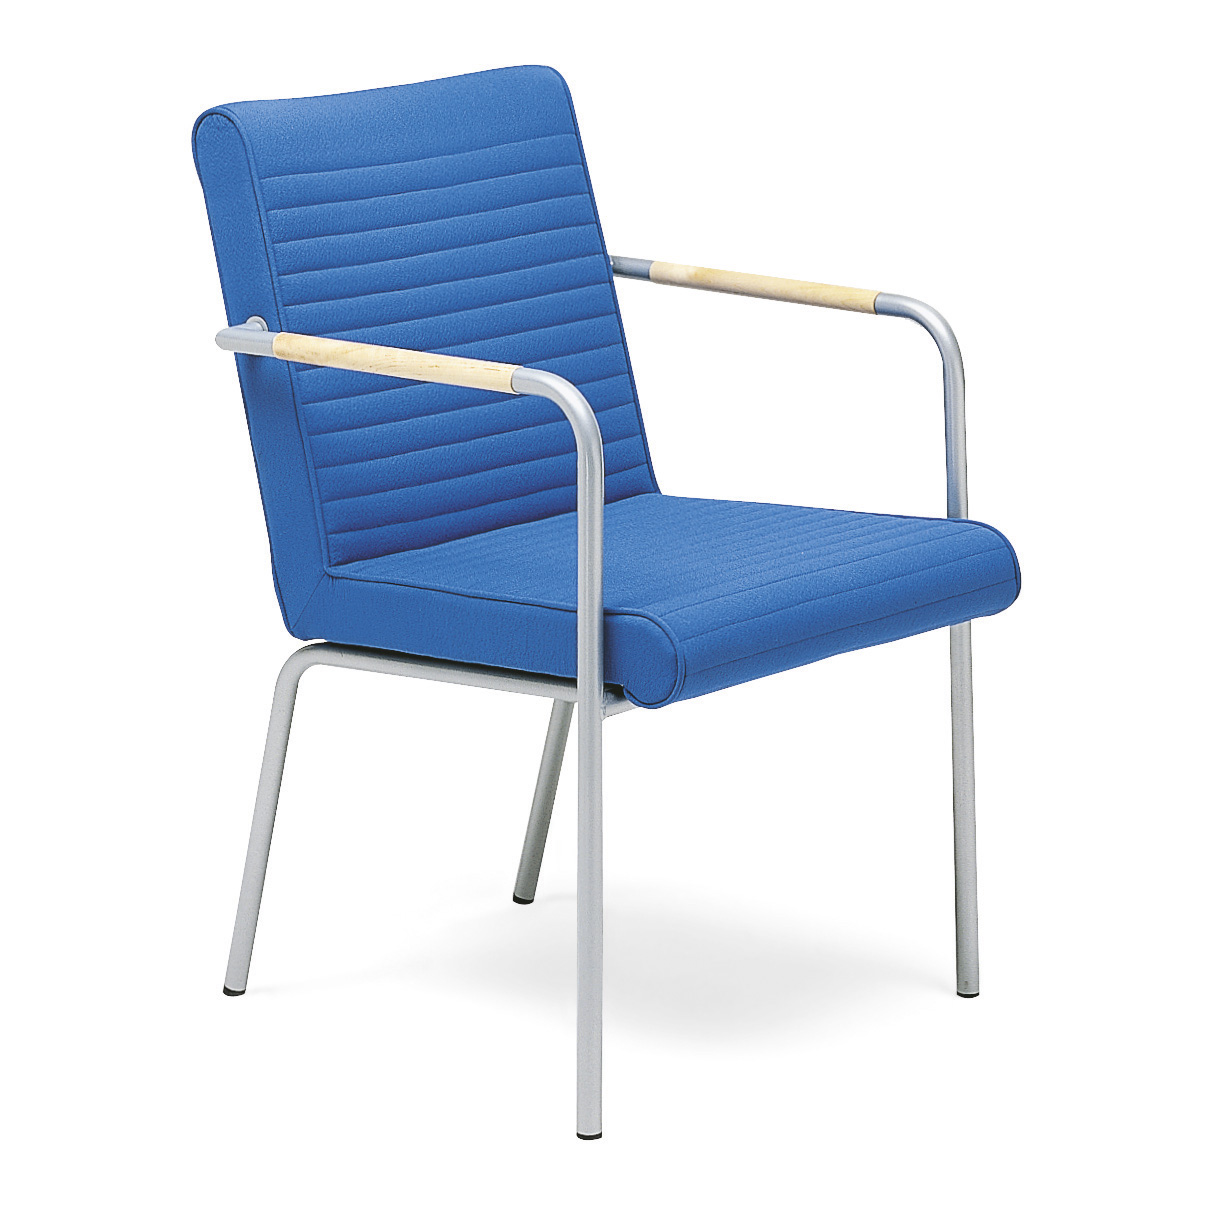 Quilt Armchair Modern Look By Designer Olle Anderson Offecct